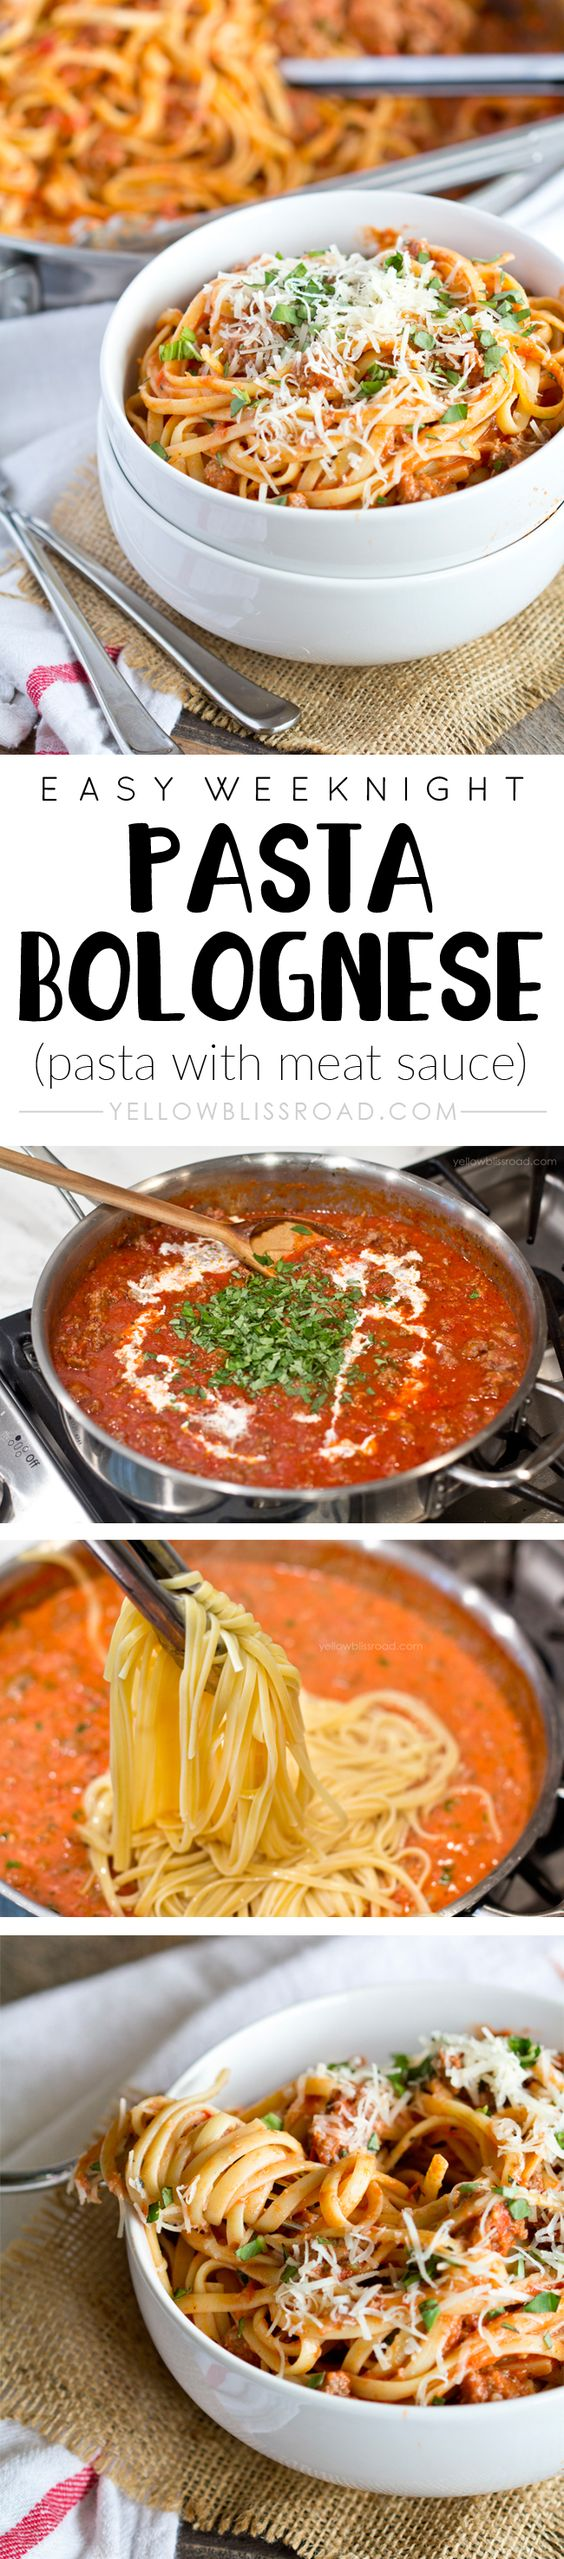 Easy Weeknight Spaghetti with Meat Sauce | Recipe | Pasta ...